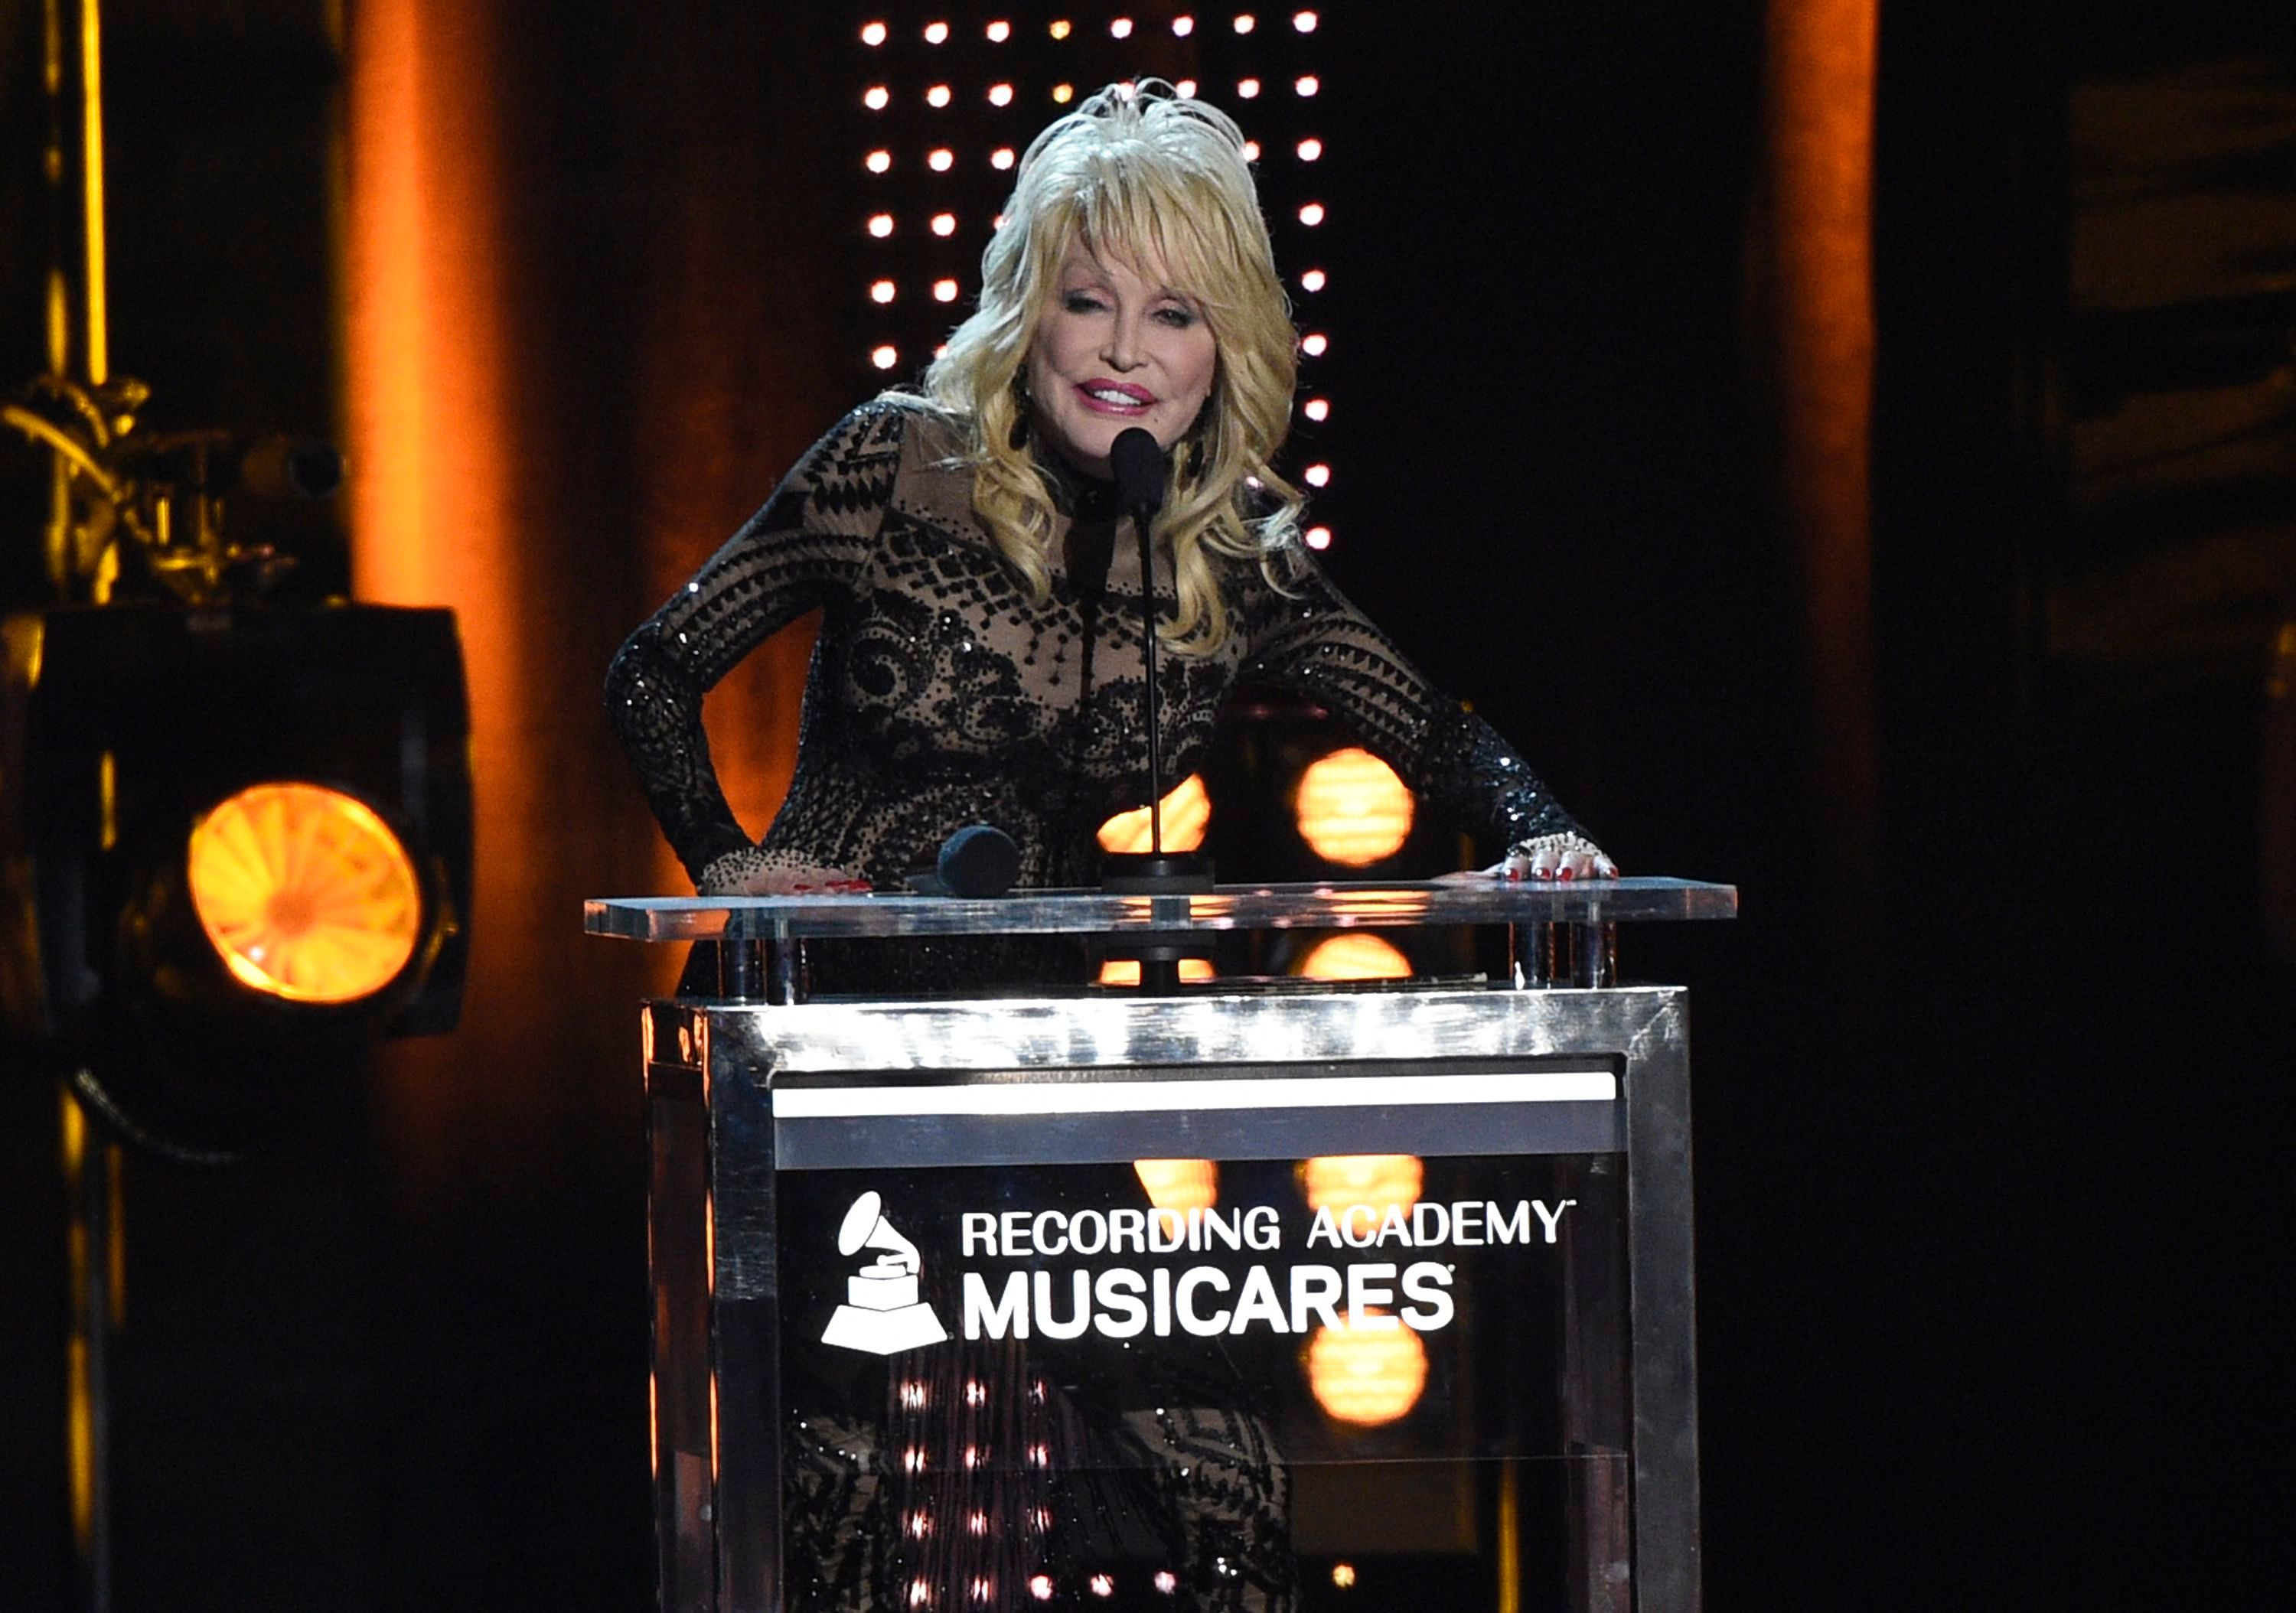 Dolly Parton Talks Feminism, Songwriting Therapy on 'CBS Sunday Morning'